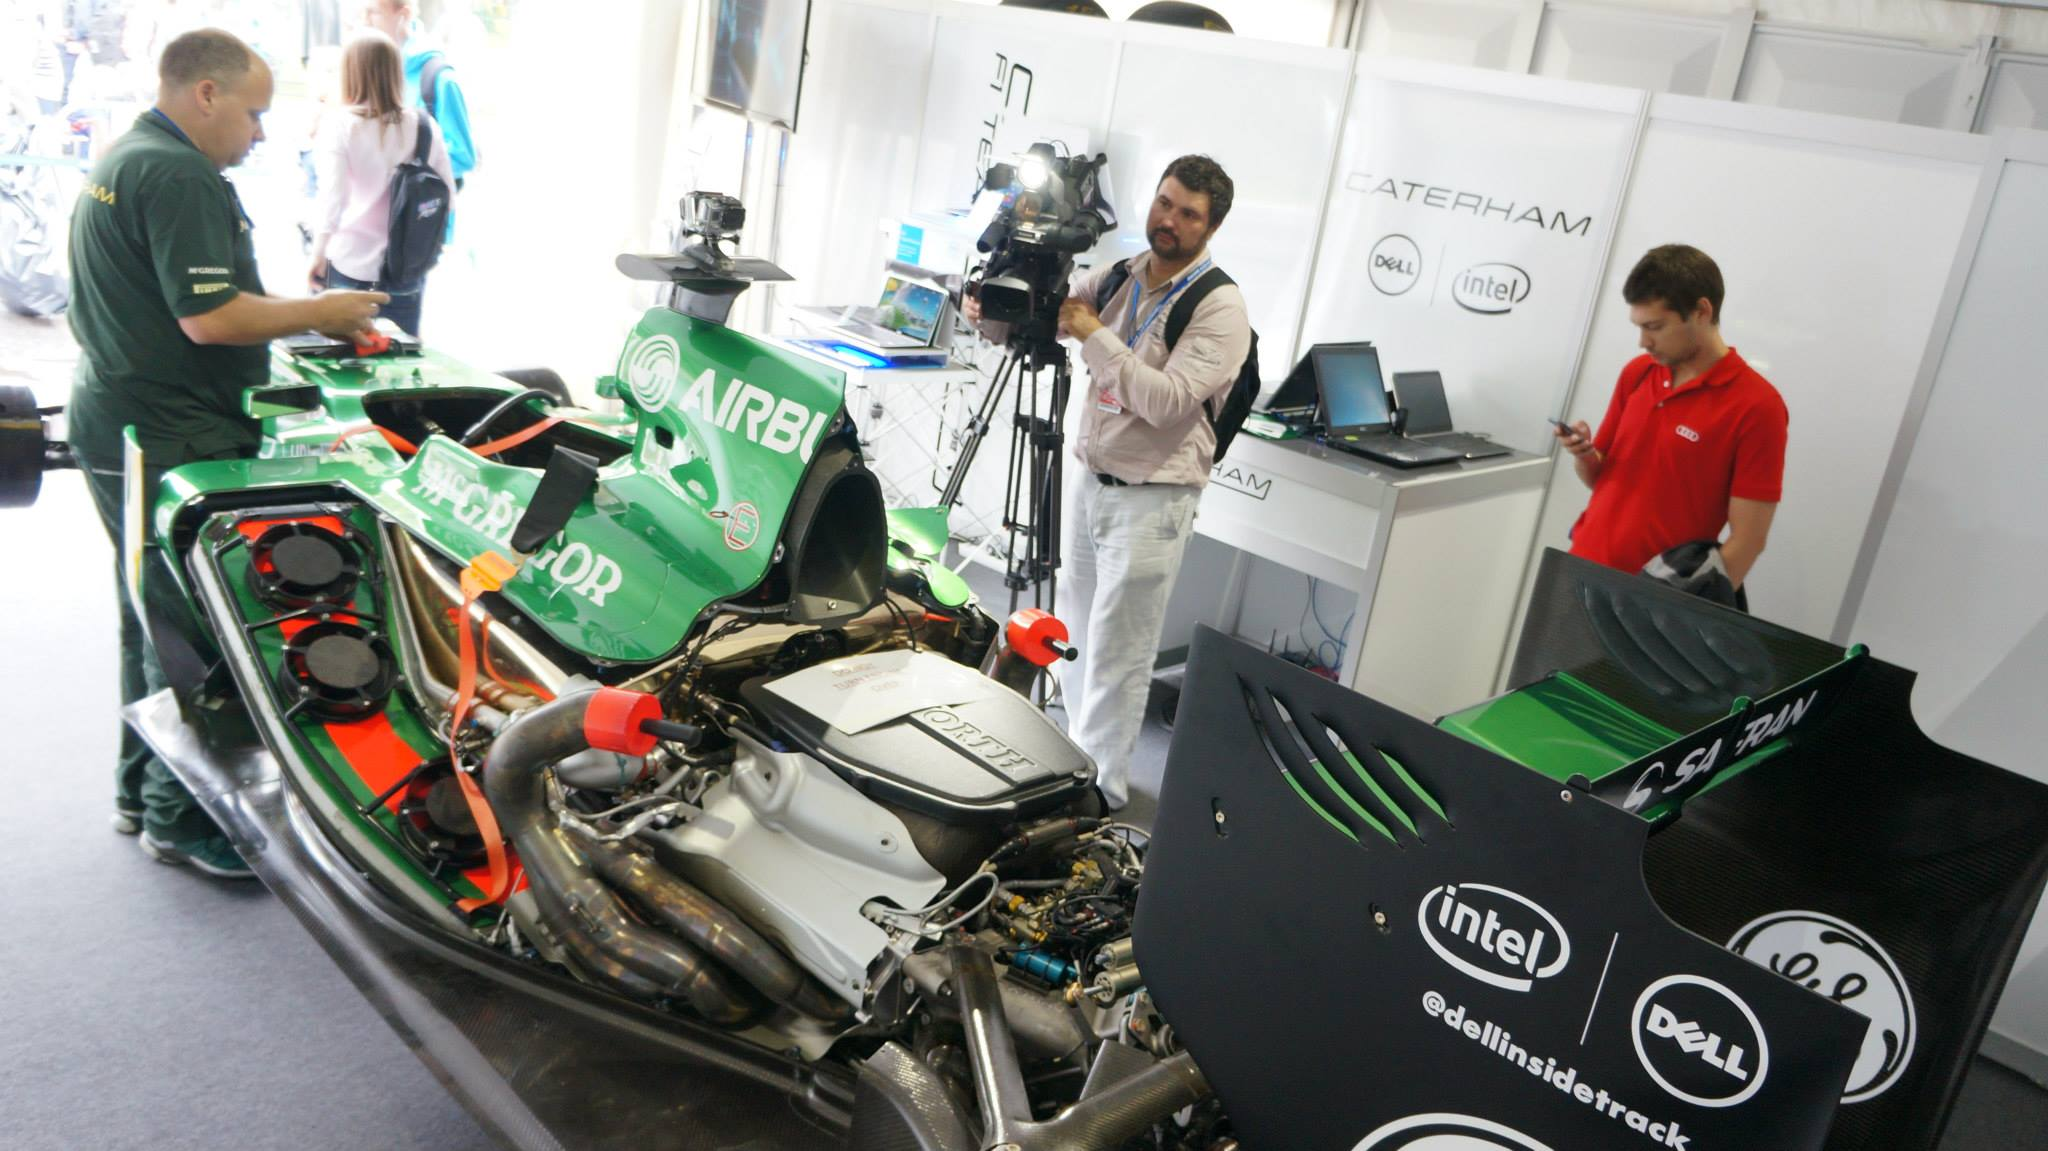 Caterham F1 Team & Dell @ Moscow City Racing 2013